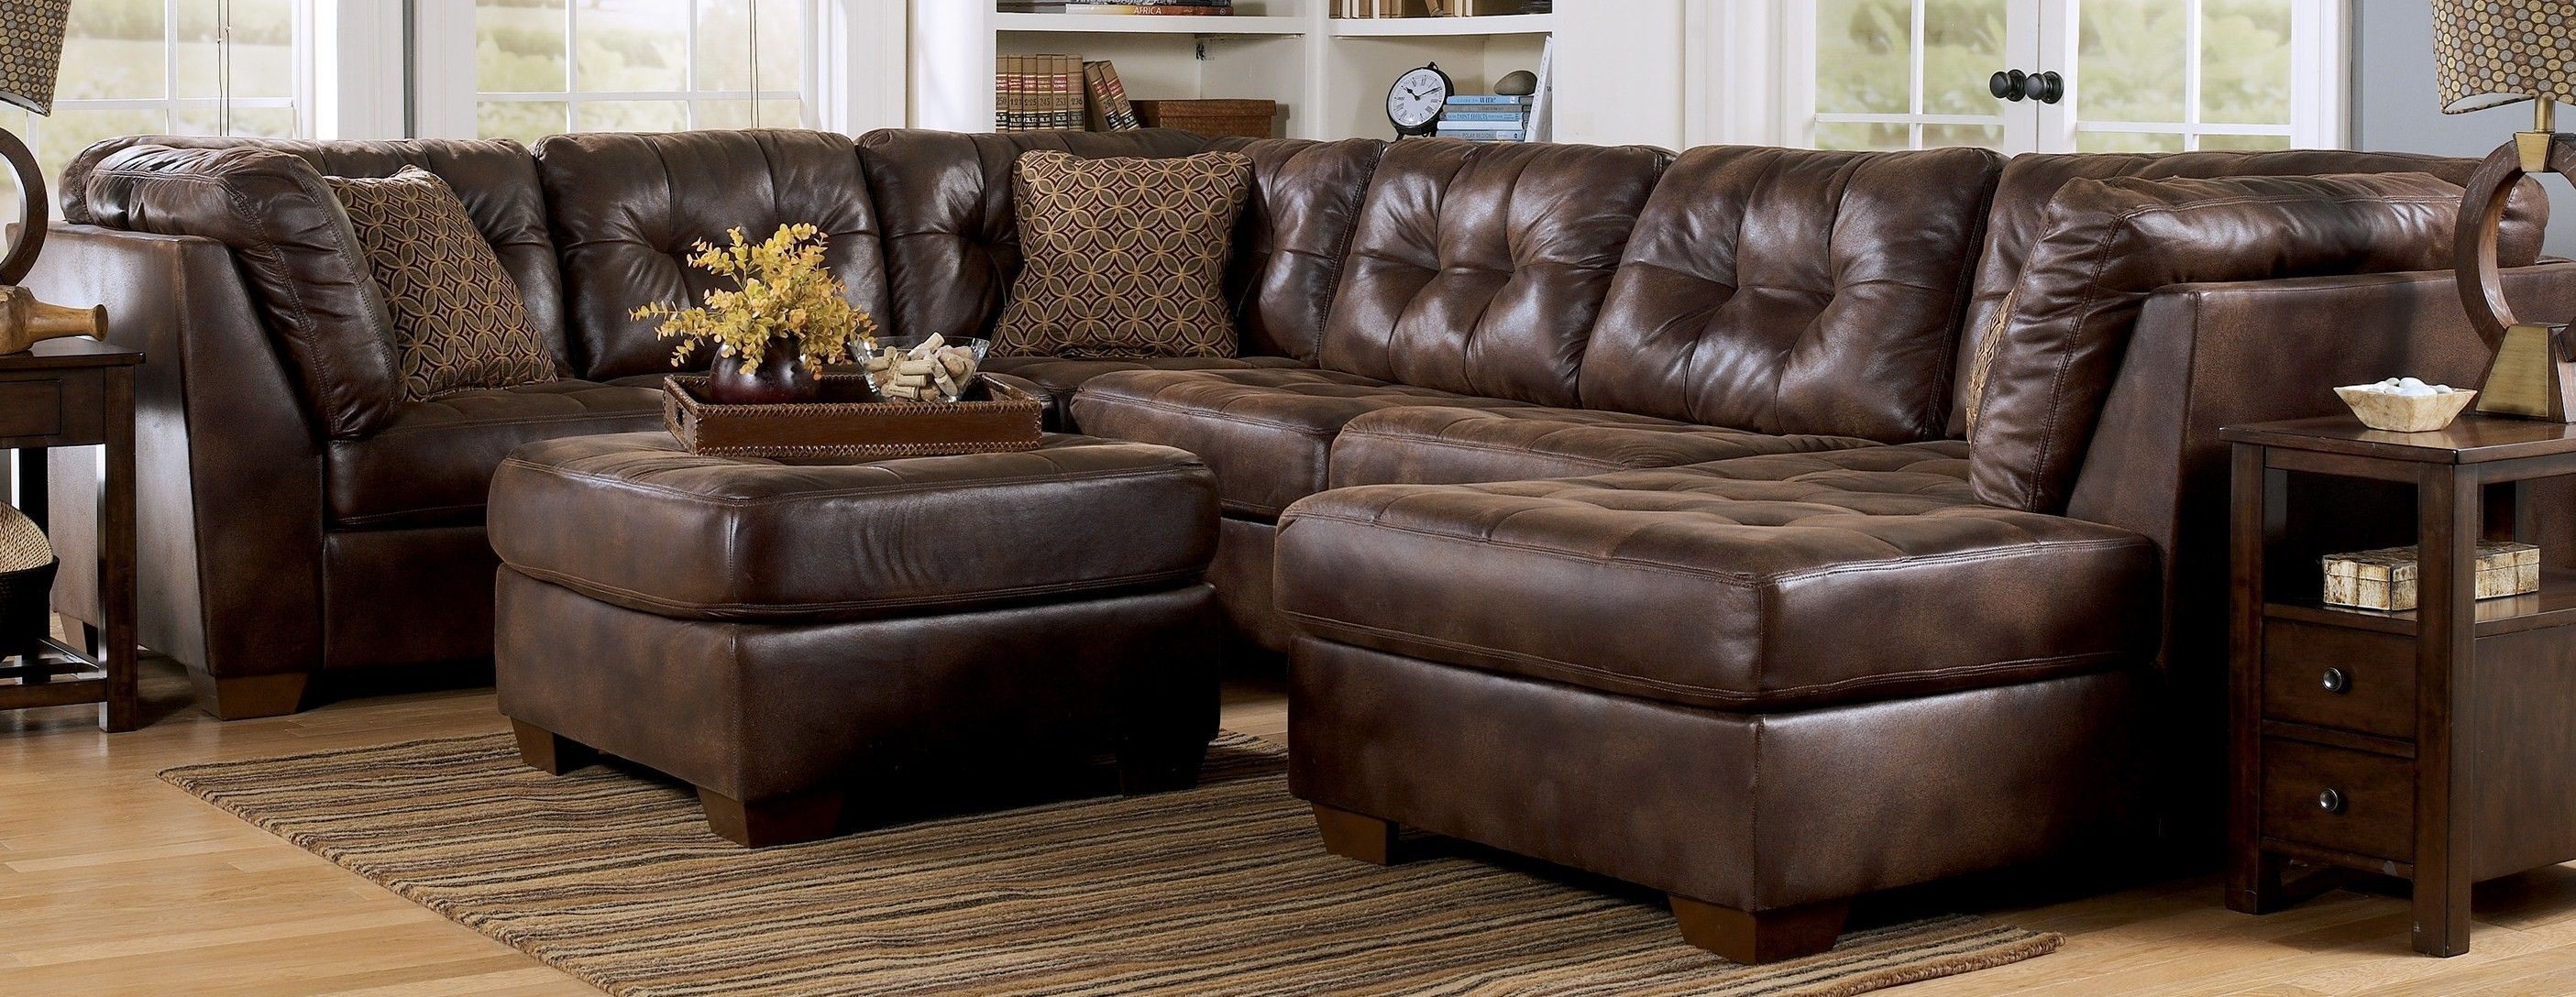 elegant leather sectional sofa with recliner decoration-Cool Leather Sectional sofa with Recliner Design